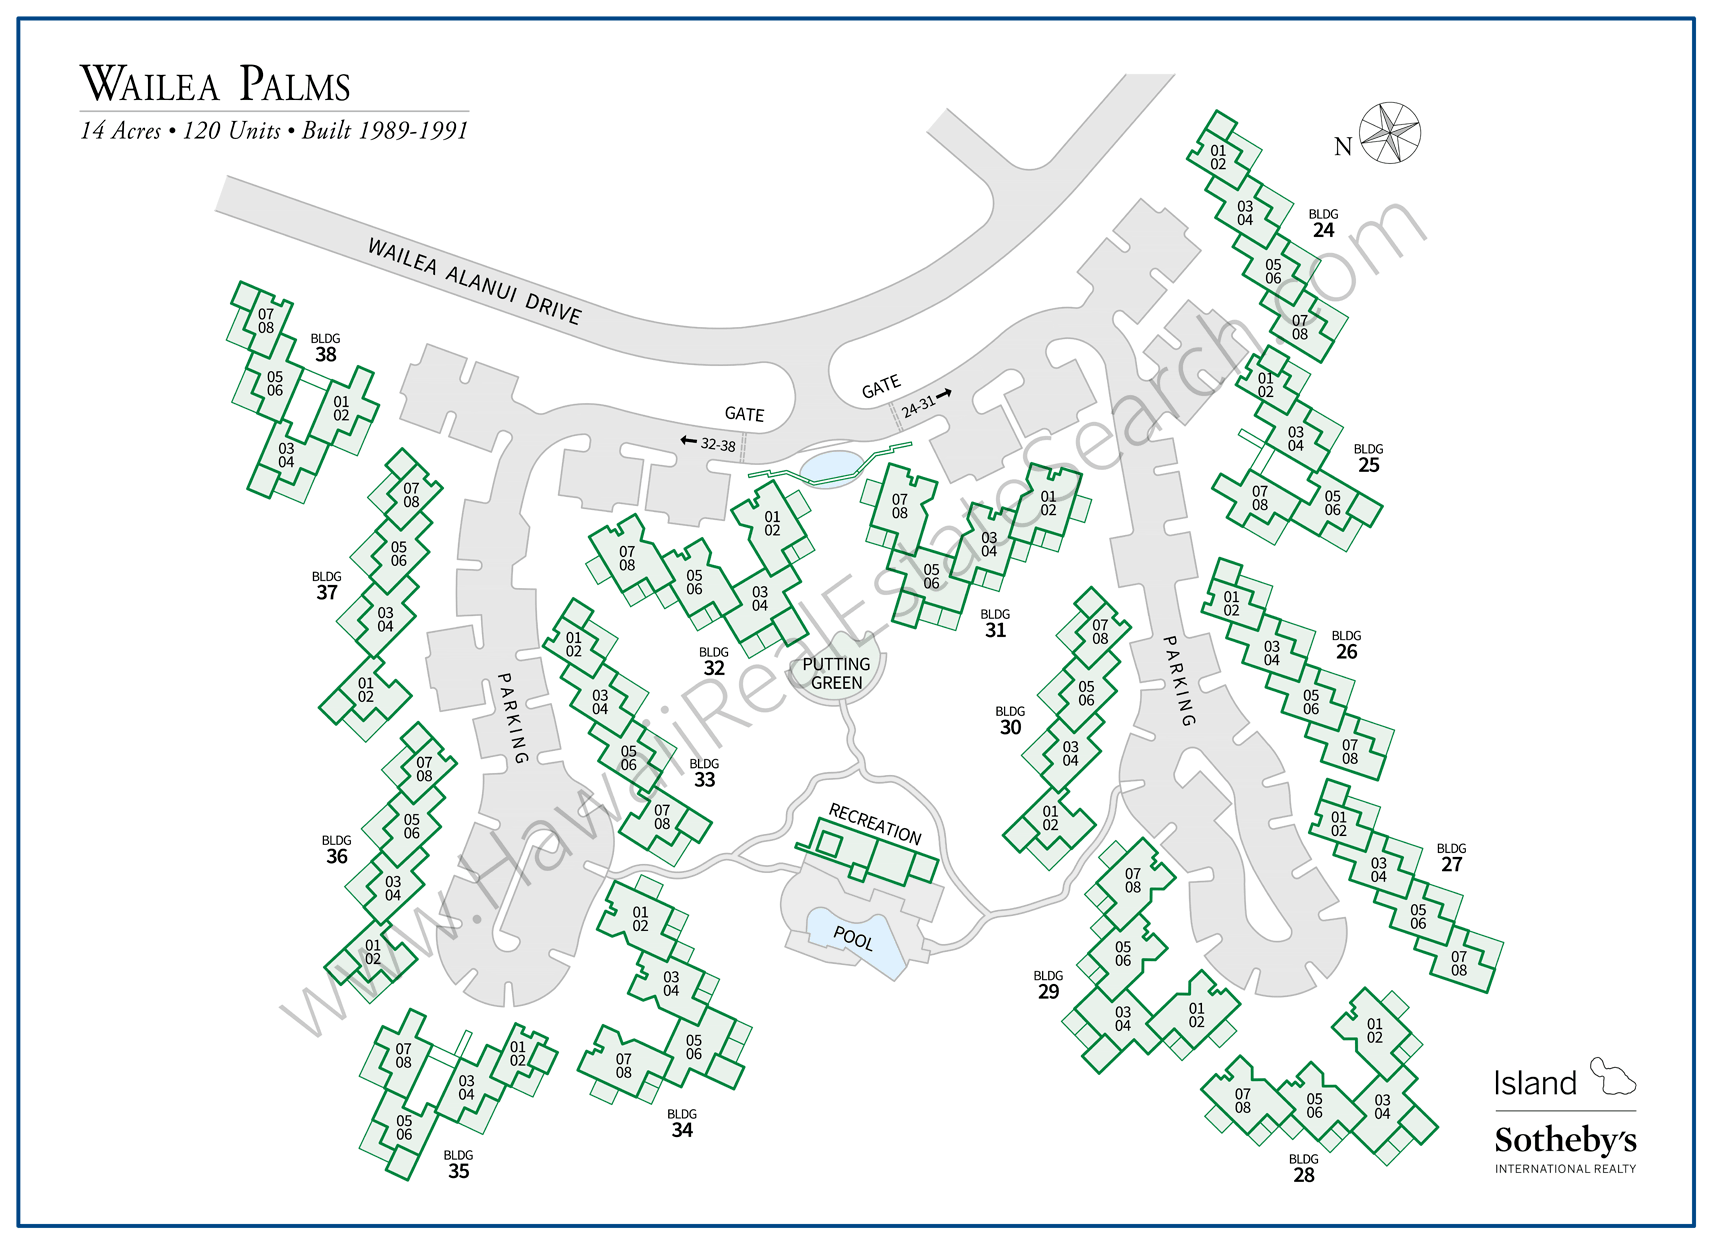 Wailea Palms Property Map Updated 2018